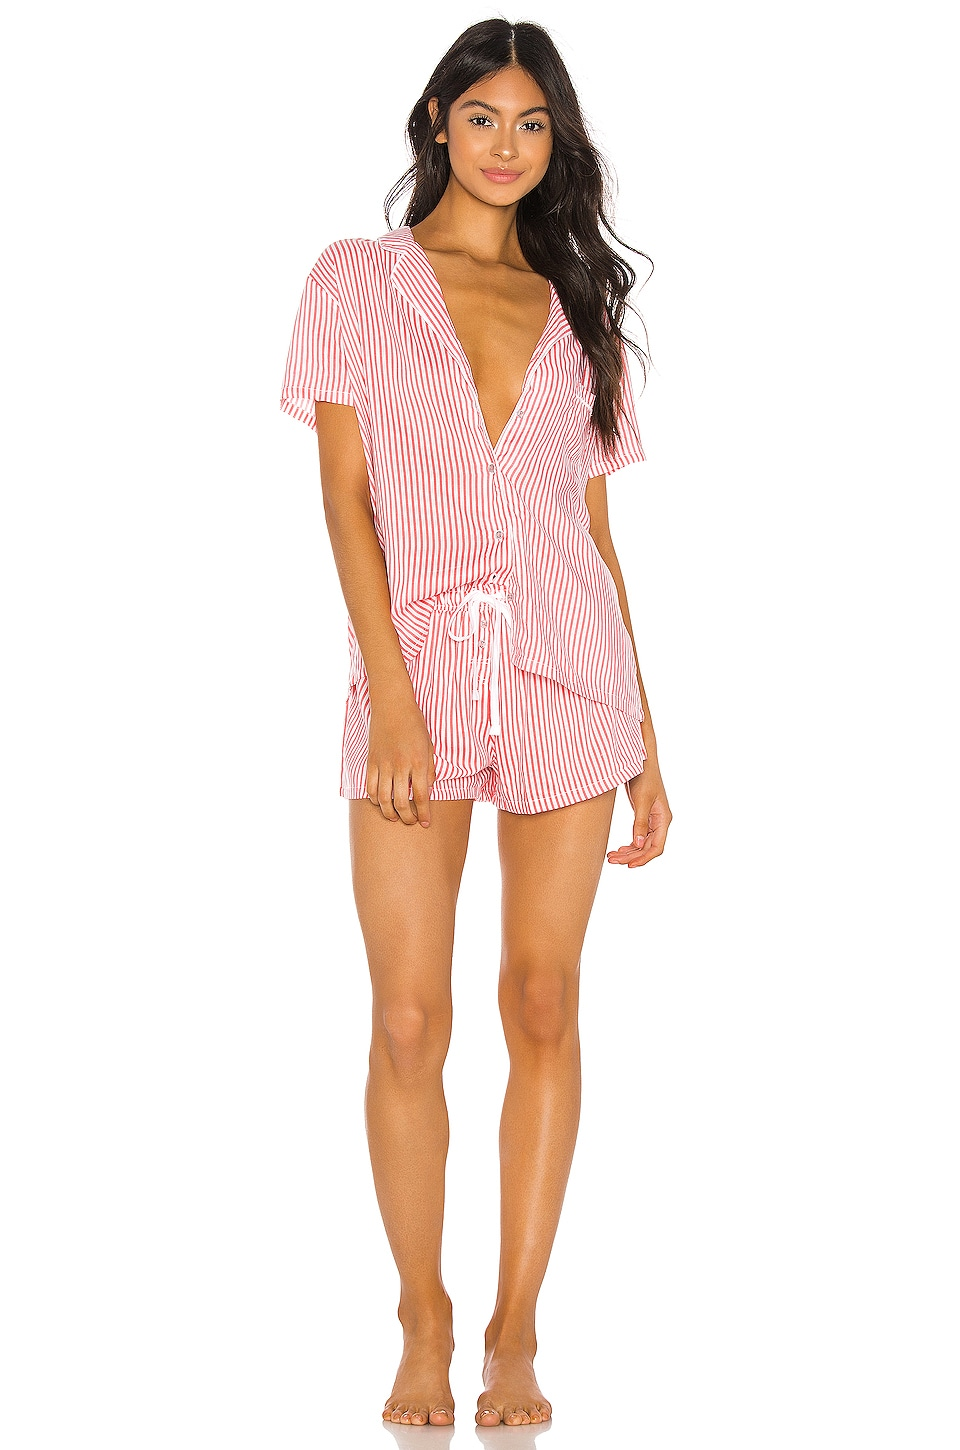 Splendid Shortie PJ Set in Heavenly Stripe Coral